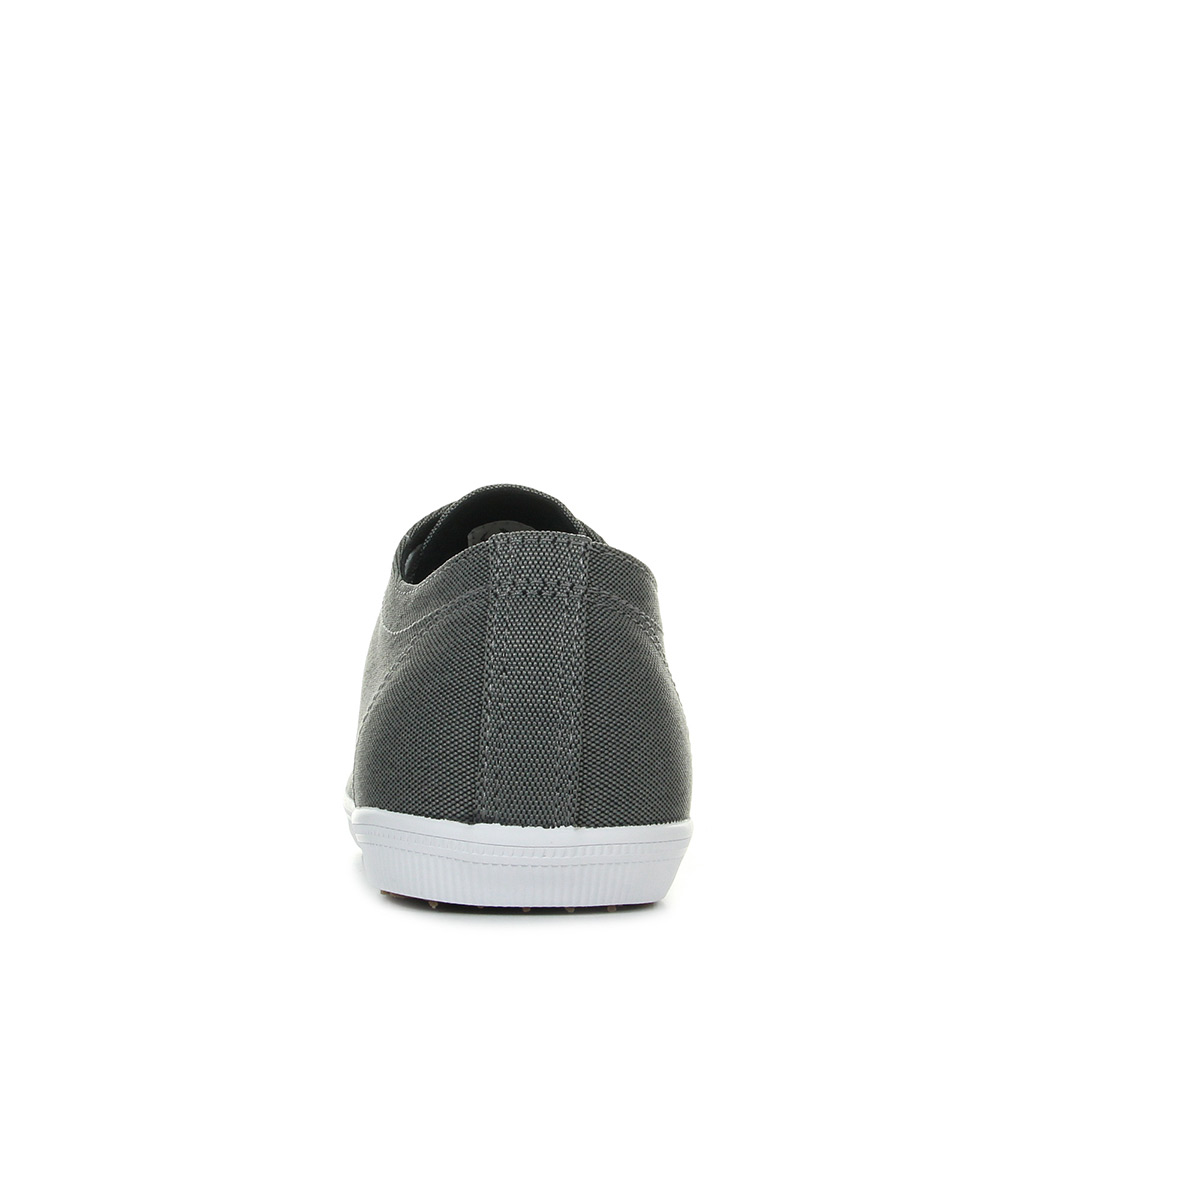 Tone B3146102Baskets Homme Fred Perry Two Kingston Mode sChdBrxtQ